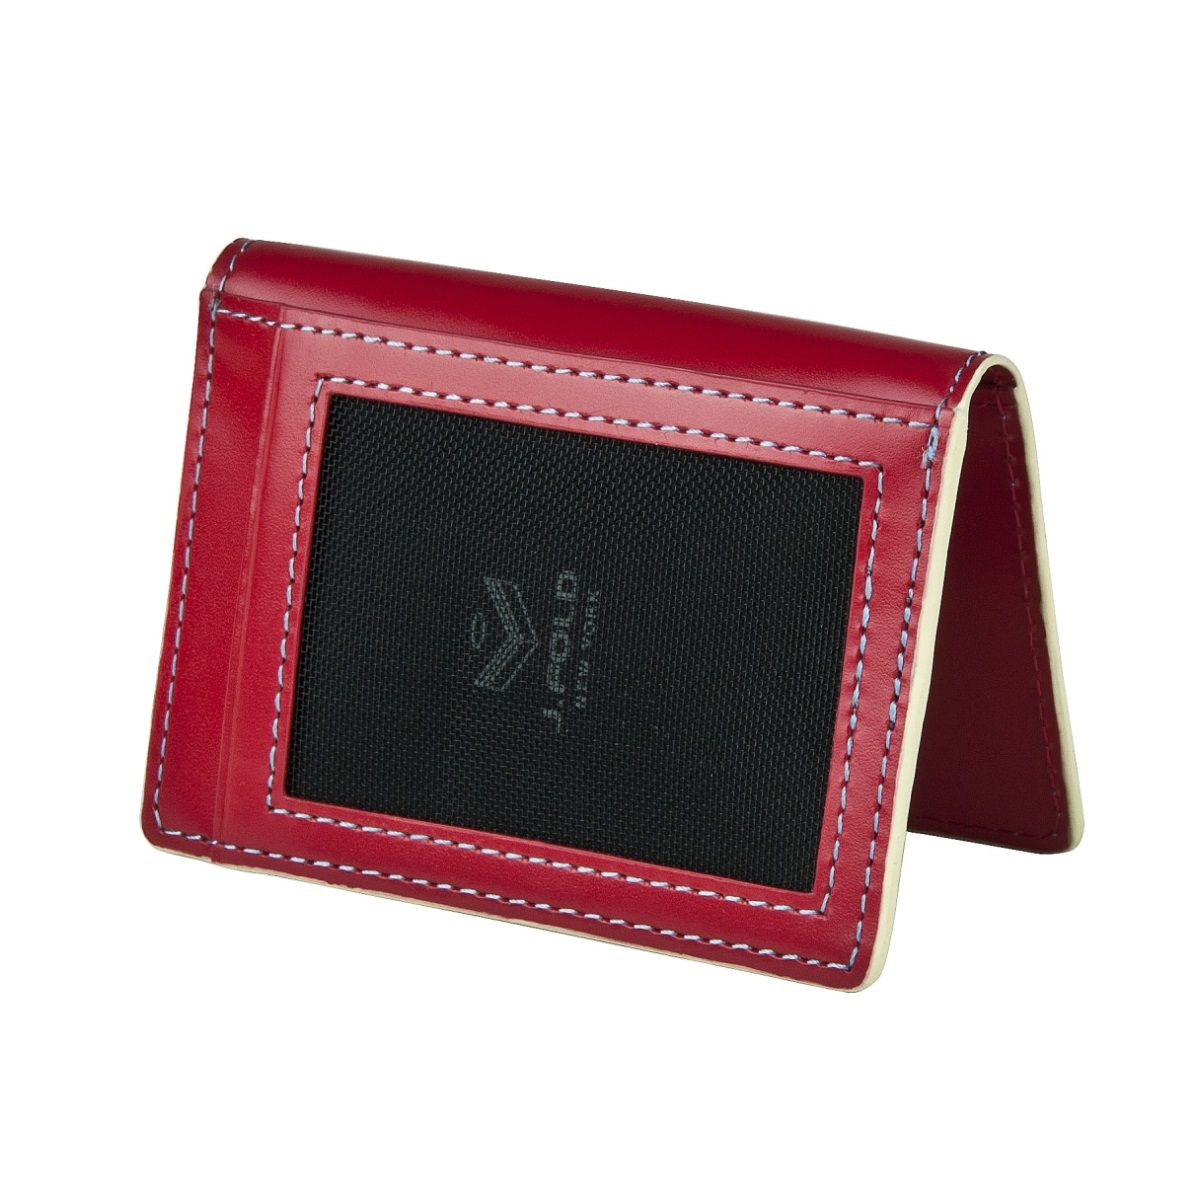 J.FOLD Folding Carrier Wallet - Red